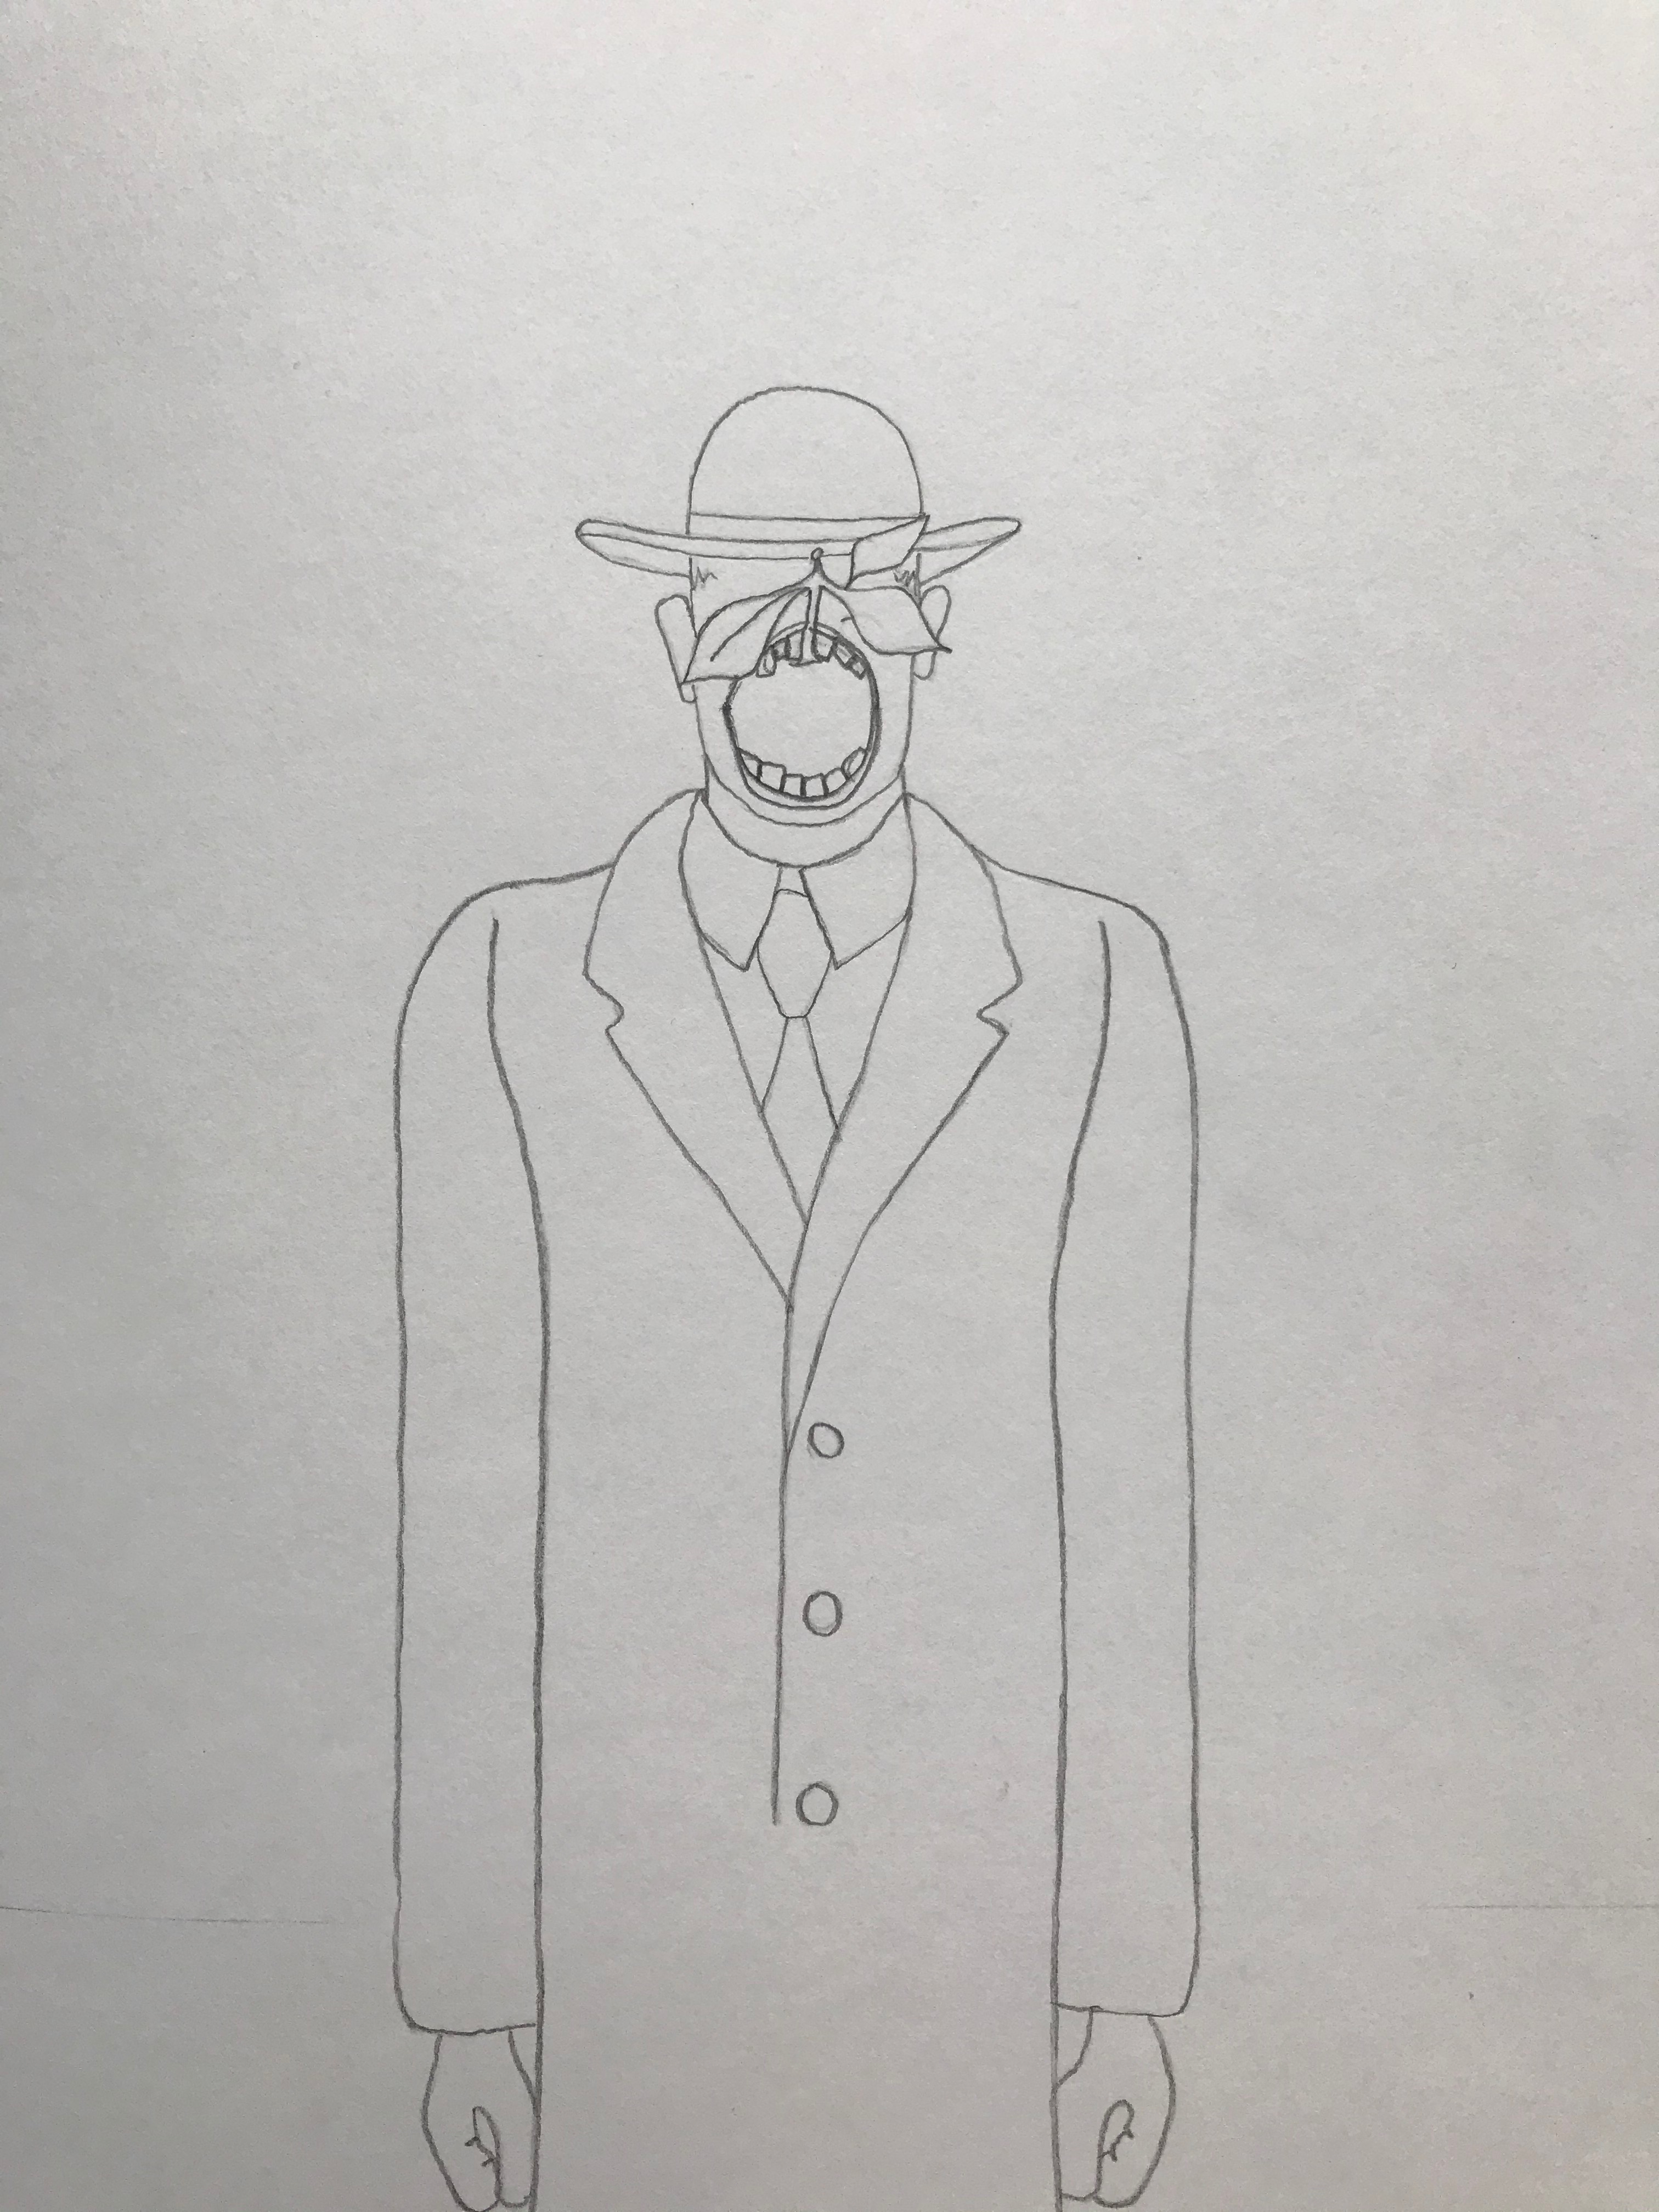 Hand drawn illustration of a man in a long cost and suit. He is wearing a hat and his wide is wide open baring his teeth.